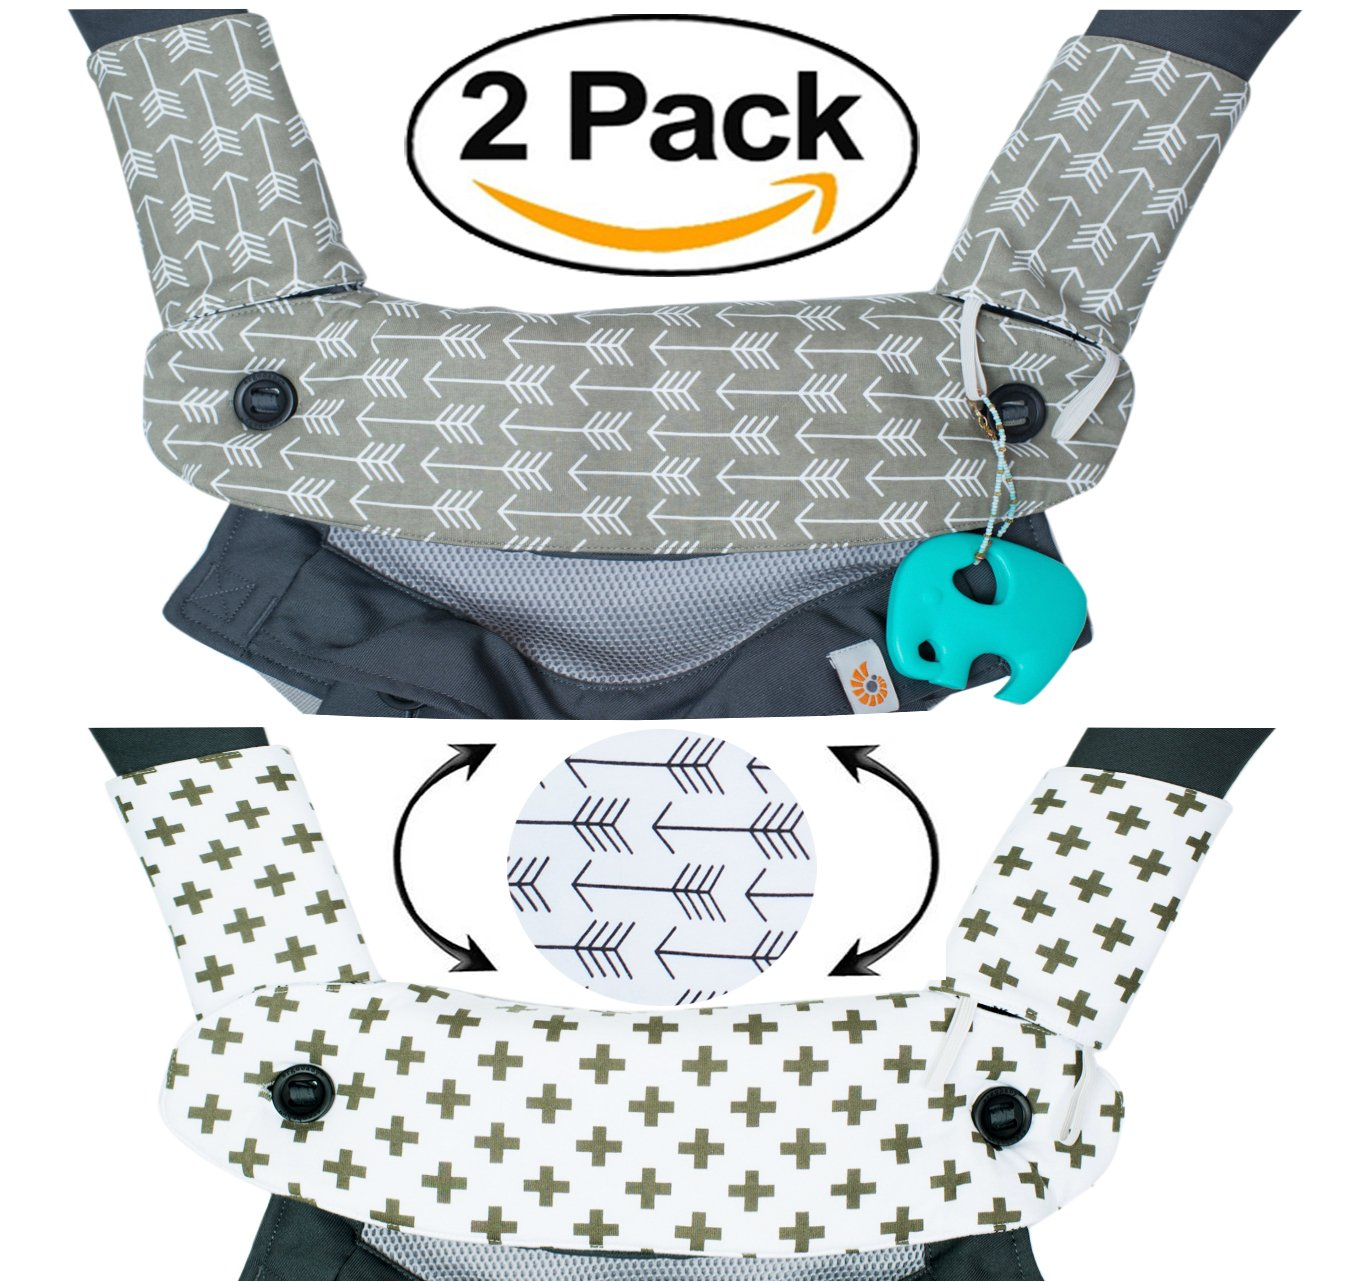 Premium 2 Packs Drool and Teething Reversible Cotton Pad   Fits Ergobaby Four Position 360 and Most Baby Carrier   Gray Arrow Cross Design   Hypoallergenic   Great Baby Shower Gift by Mila Millie